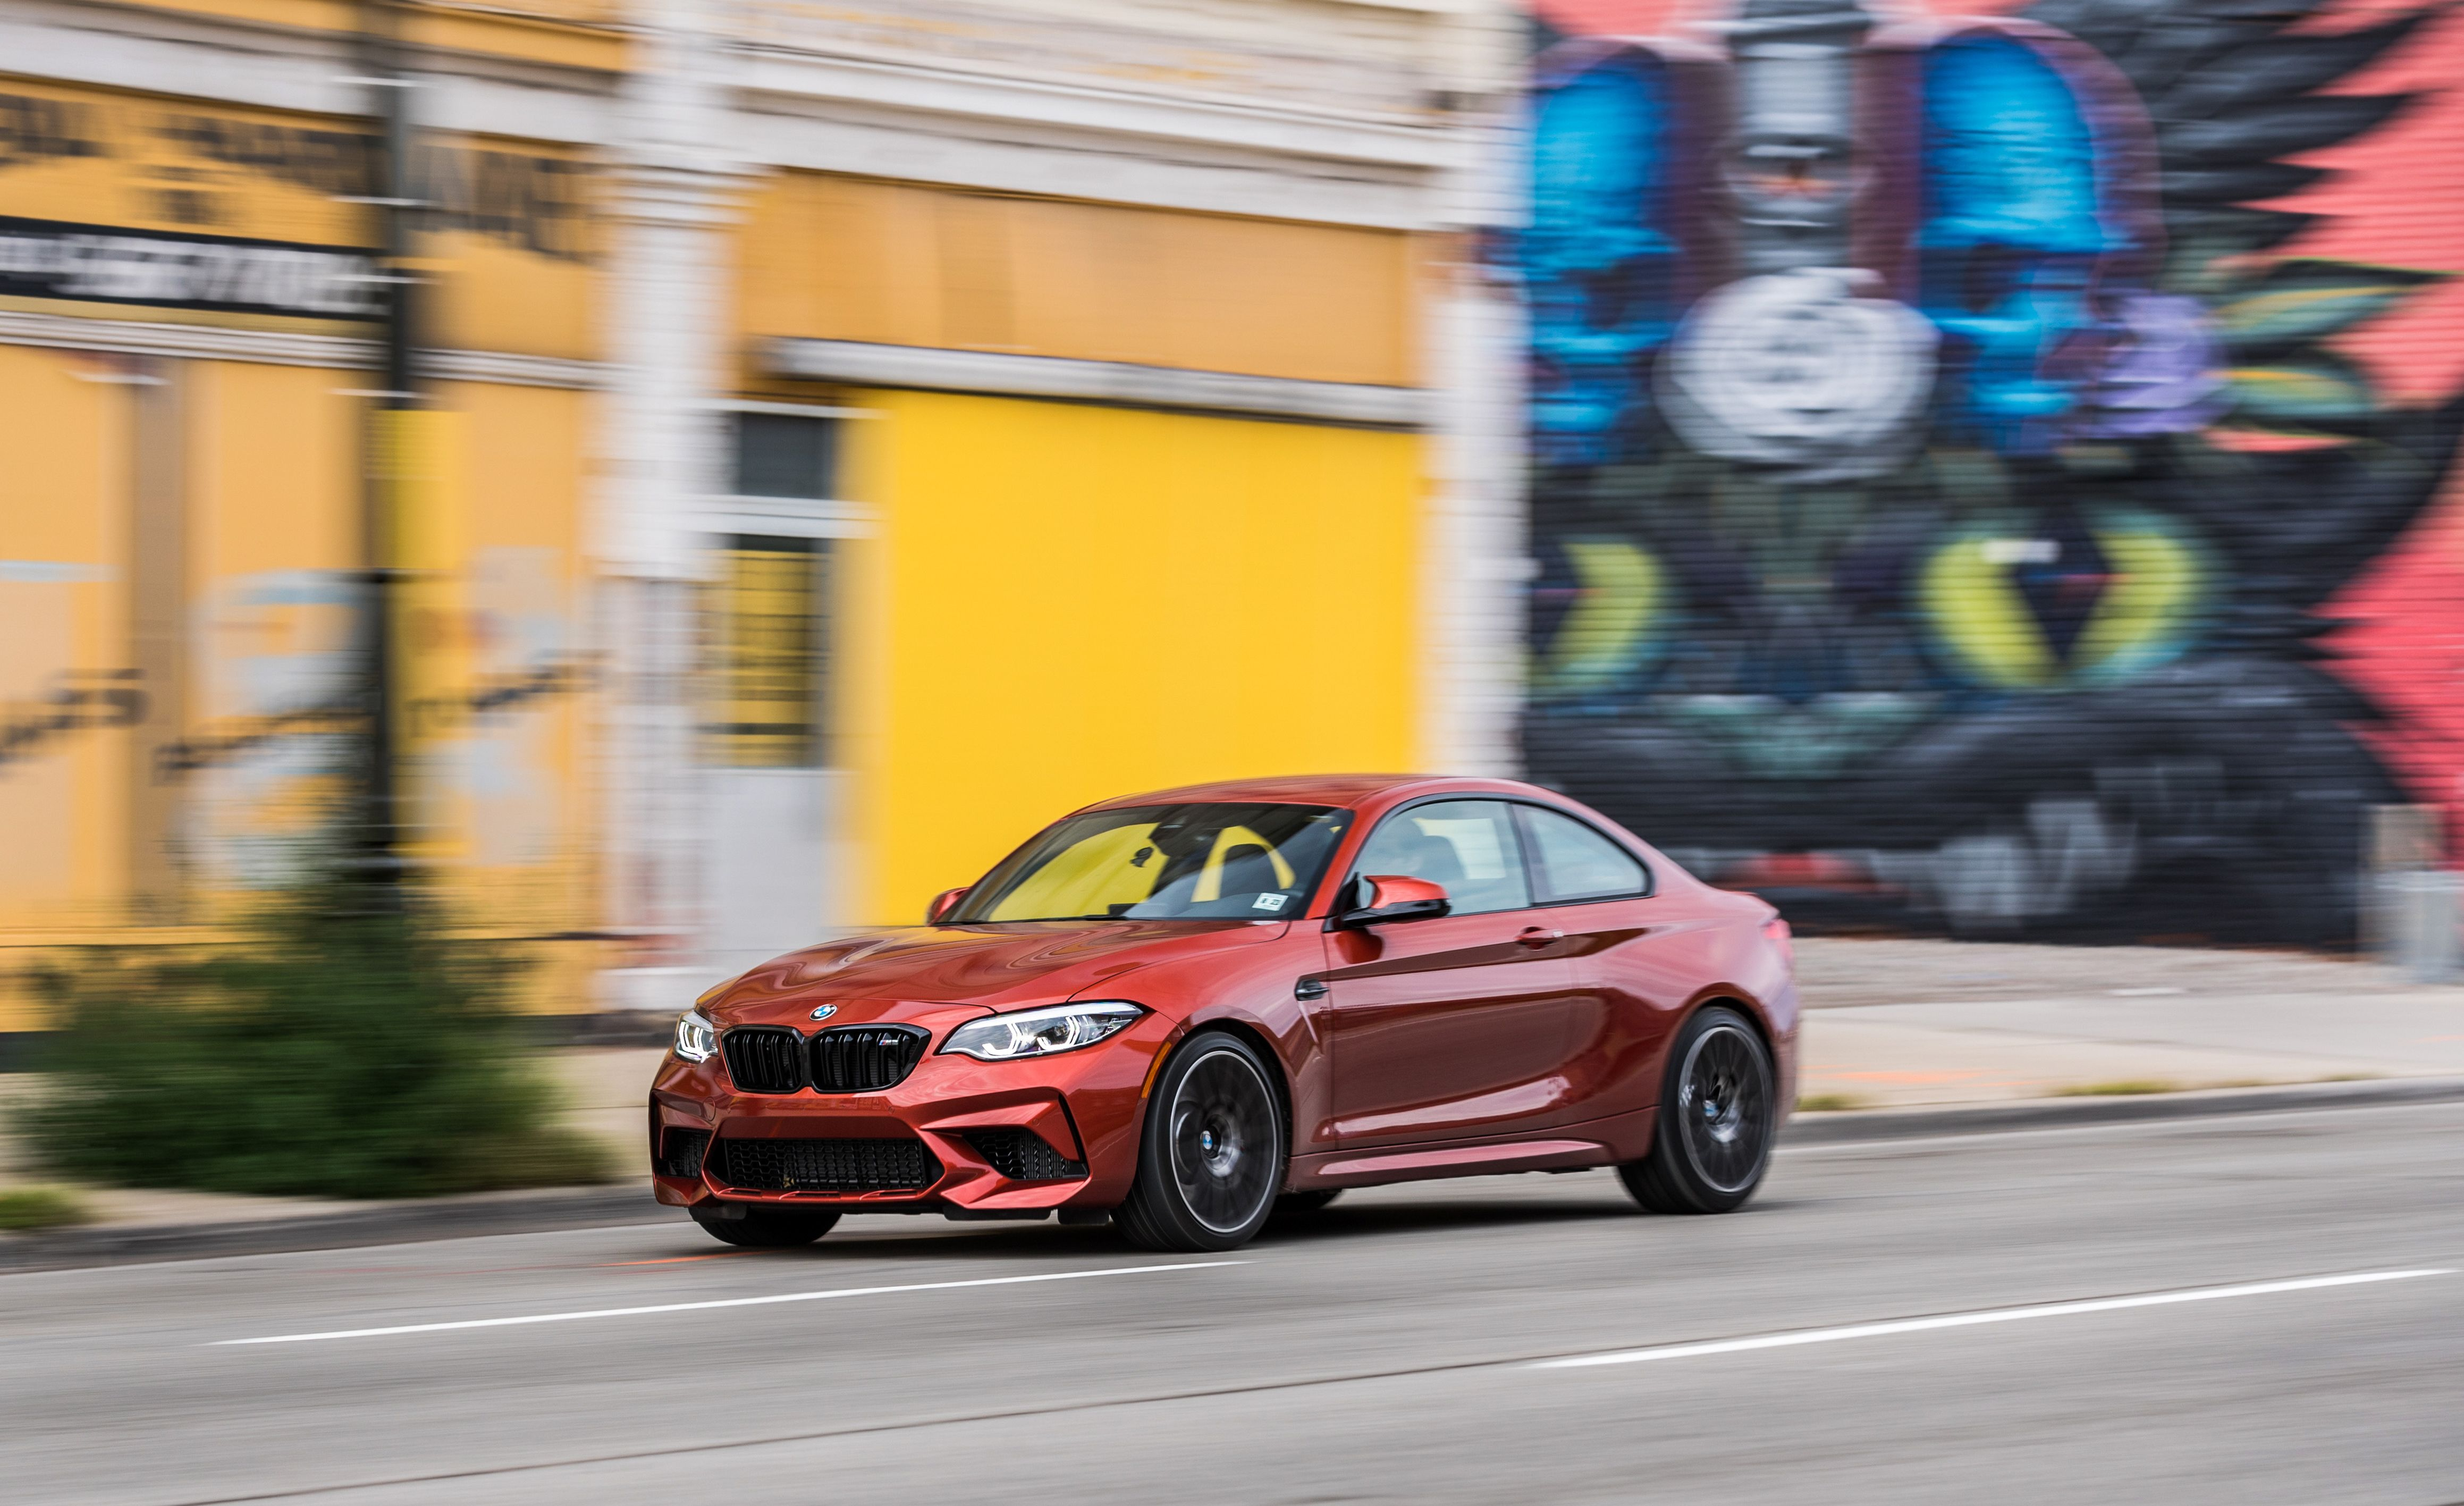 2020 Bmw M2 Reviews Bmw M2 Price Photos And Specs Car And Driver